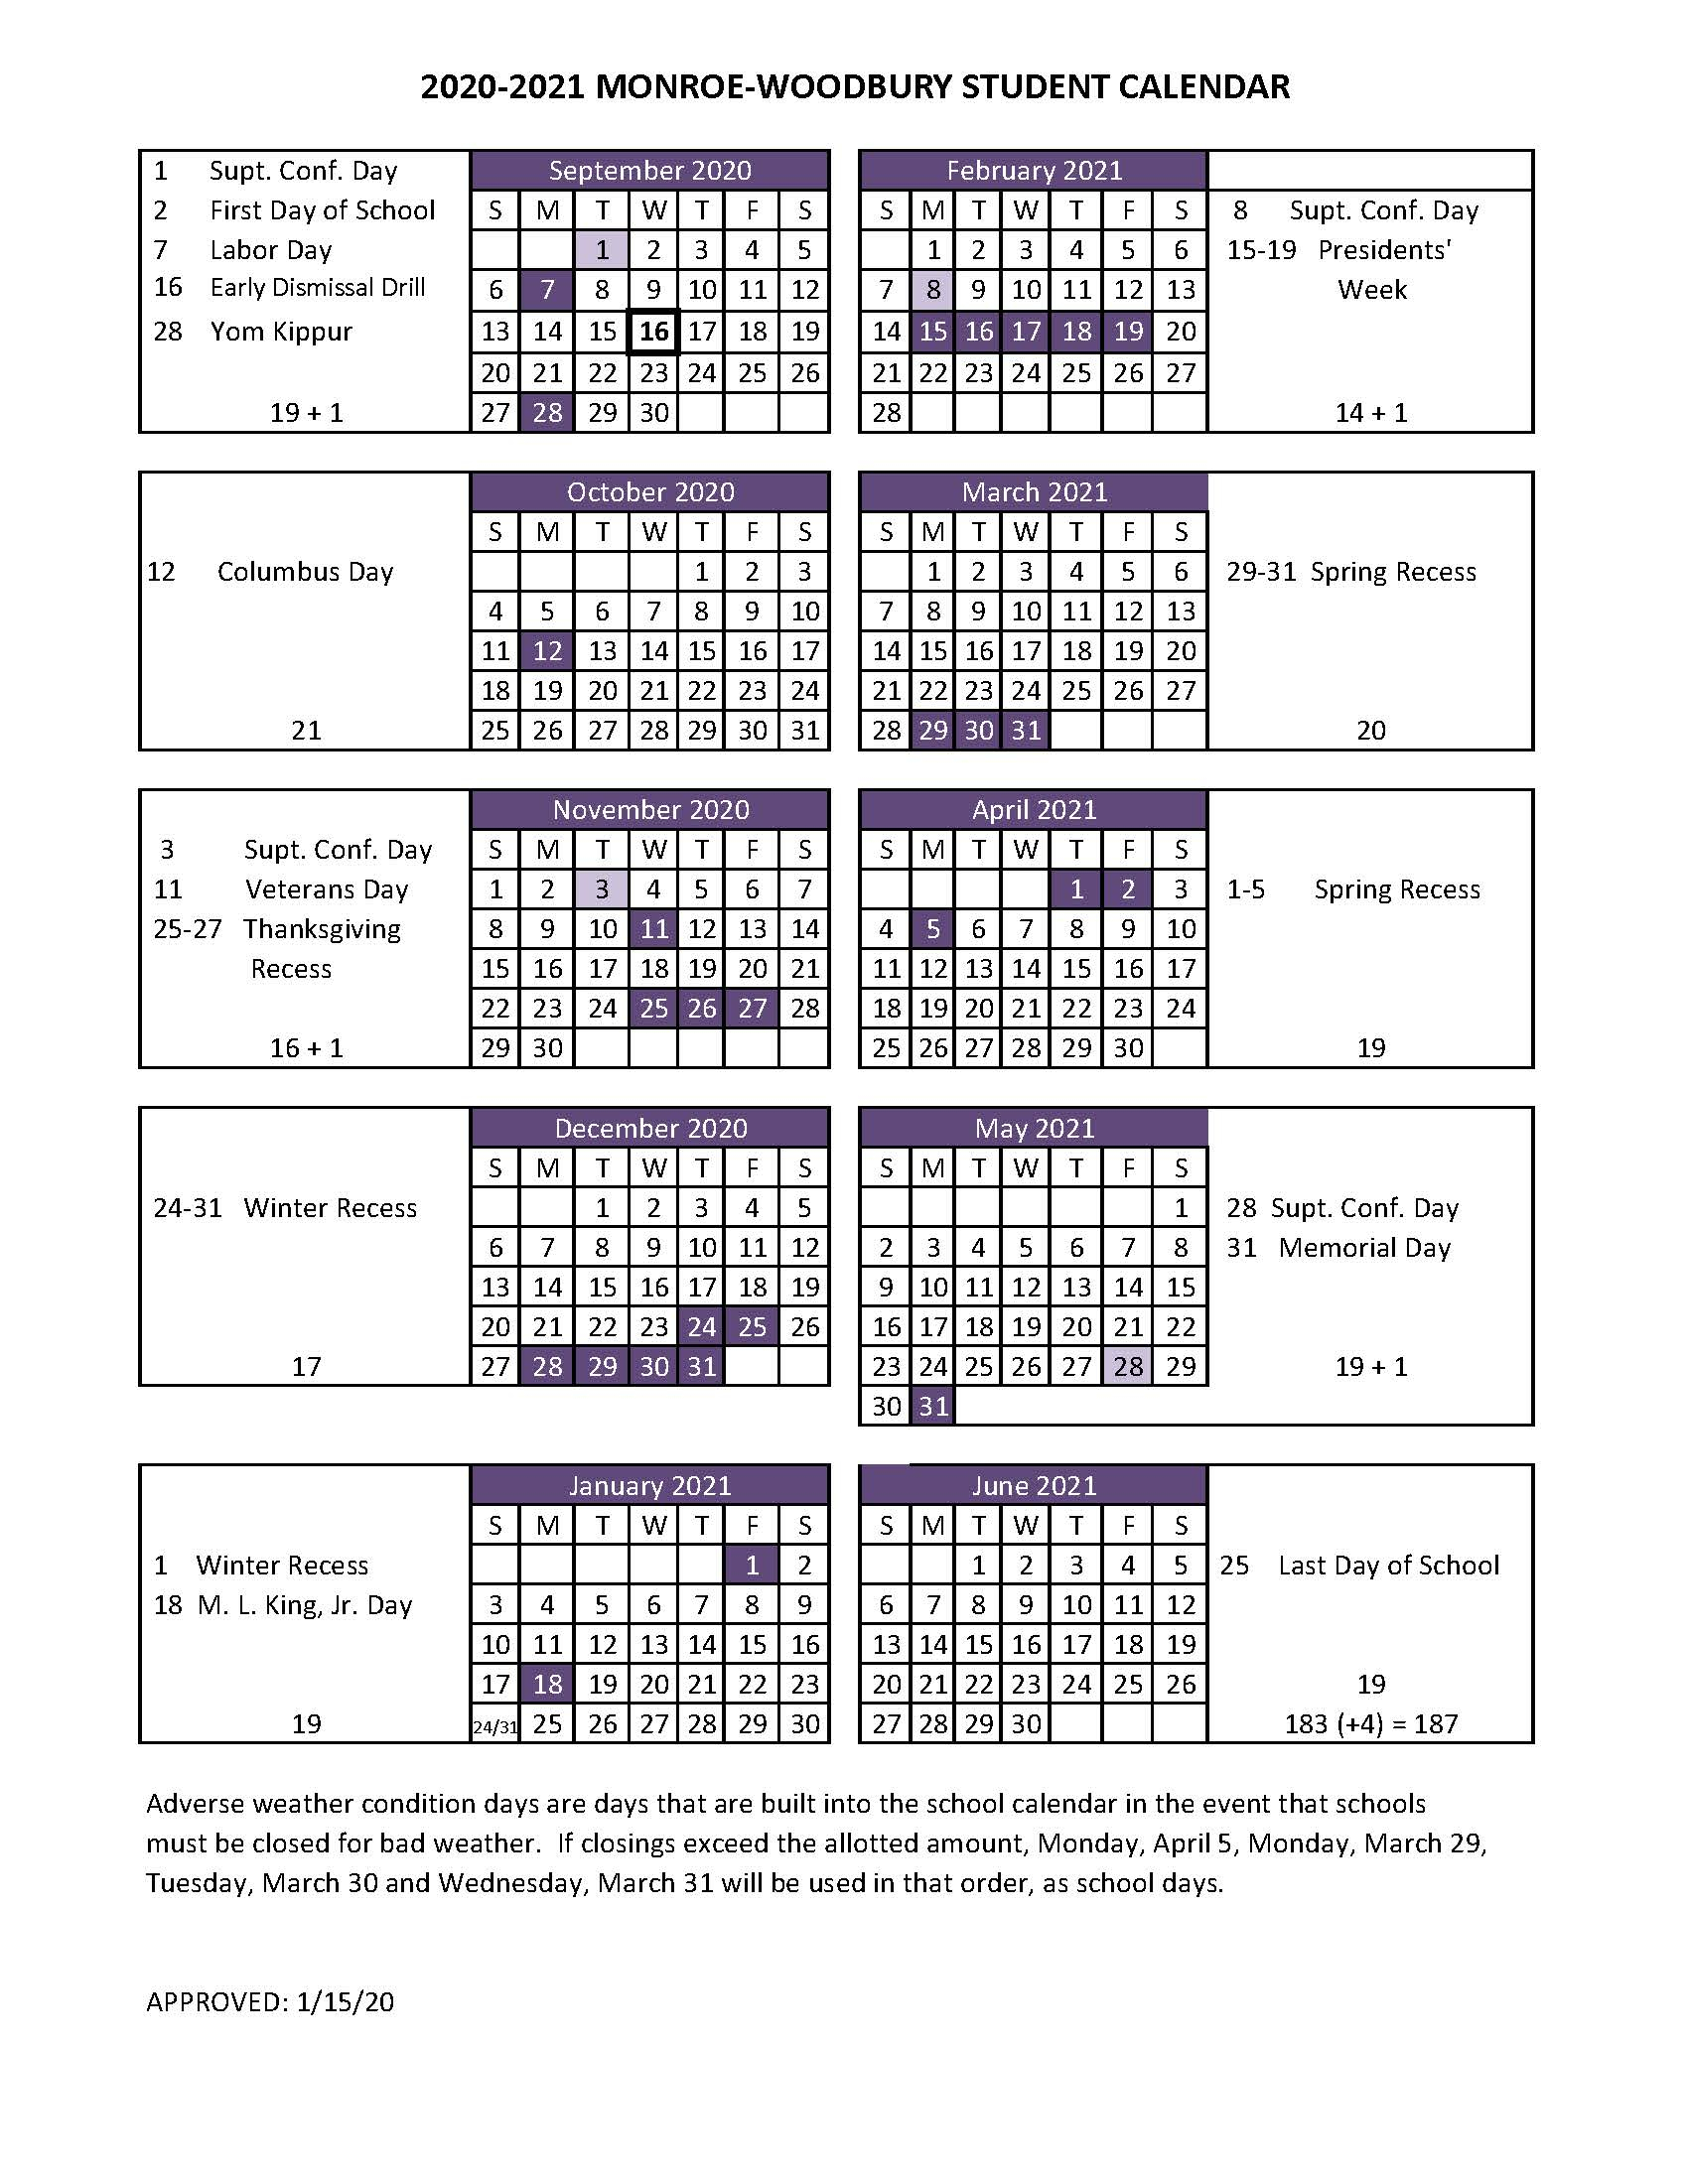 2020-2021 Student Calendar - Monroe-Woodbury Central School regarding Spring Valley Ny Hs Calendar